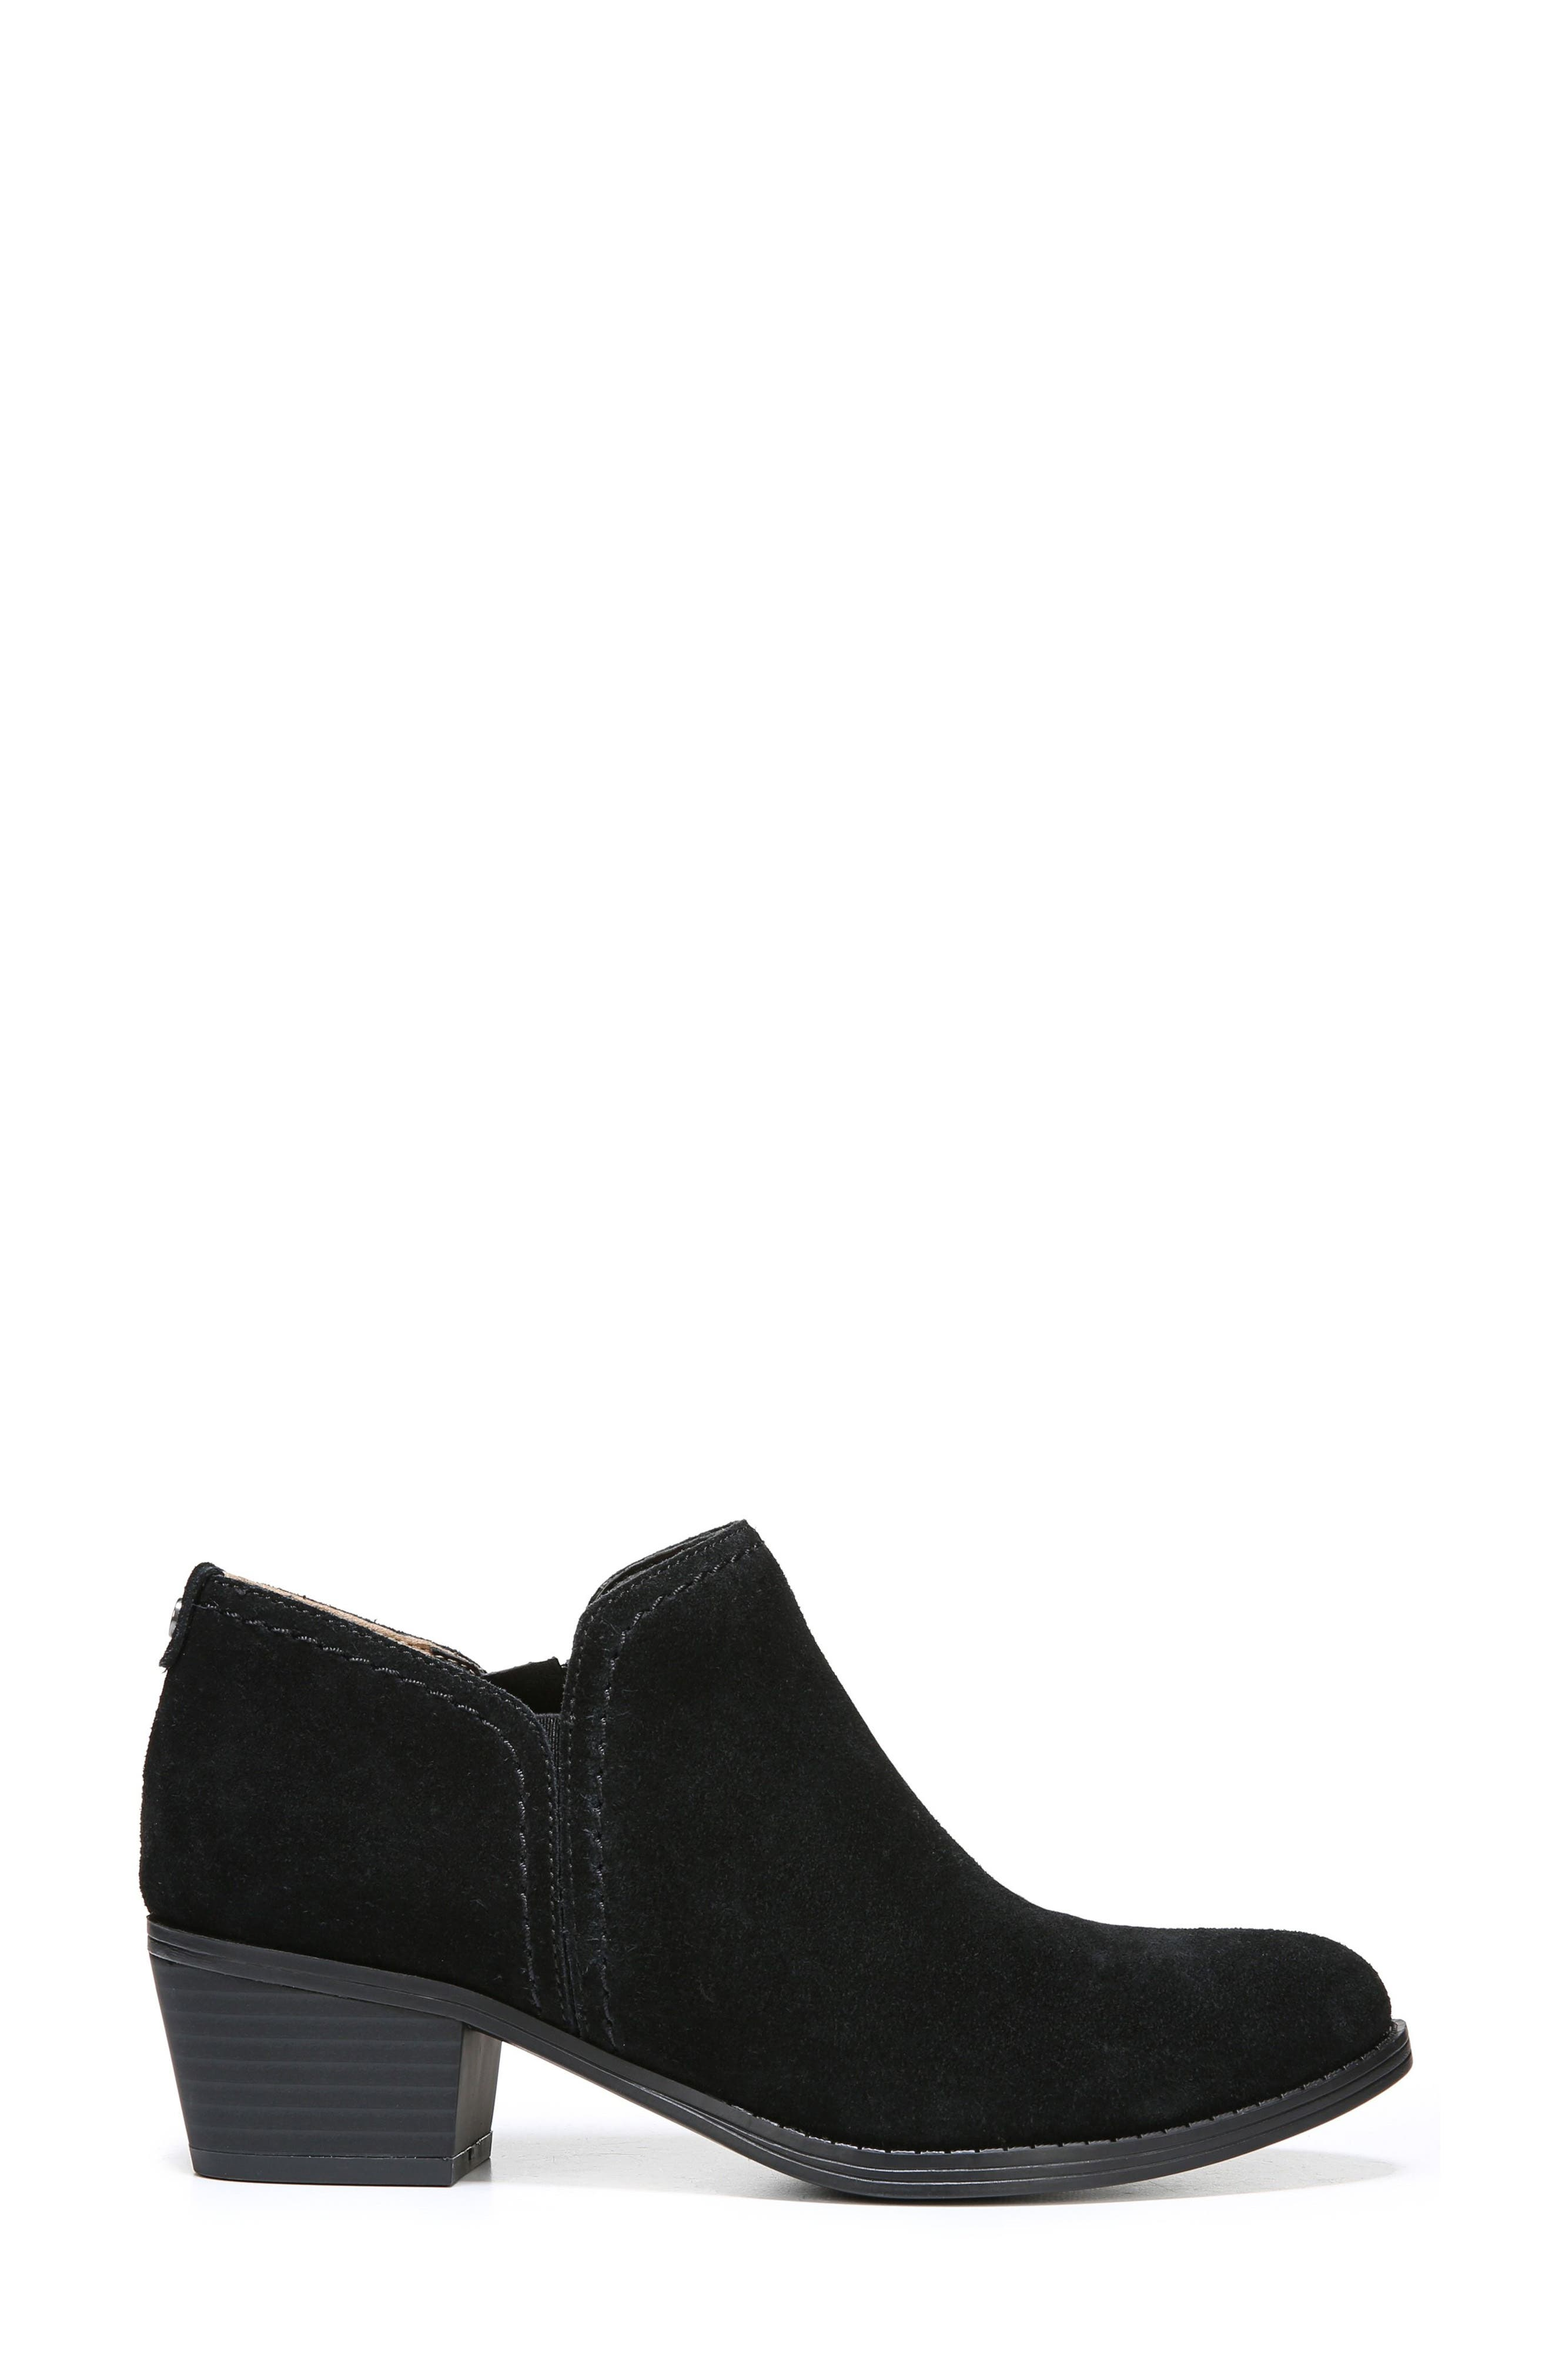 NATURALIZER, 'Zarie' Block Heel Bootie, Alternate thumbnail 3, color, 012